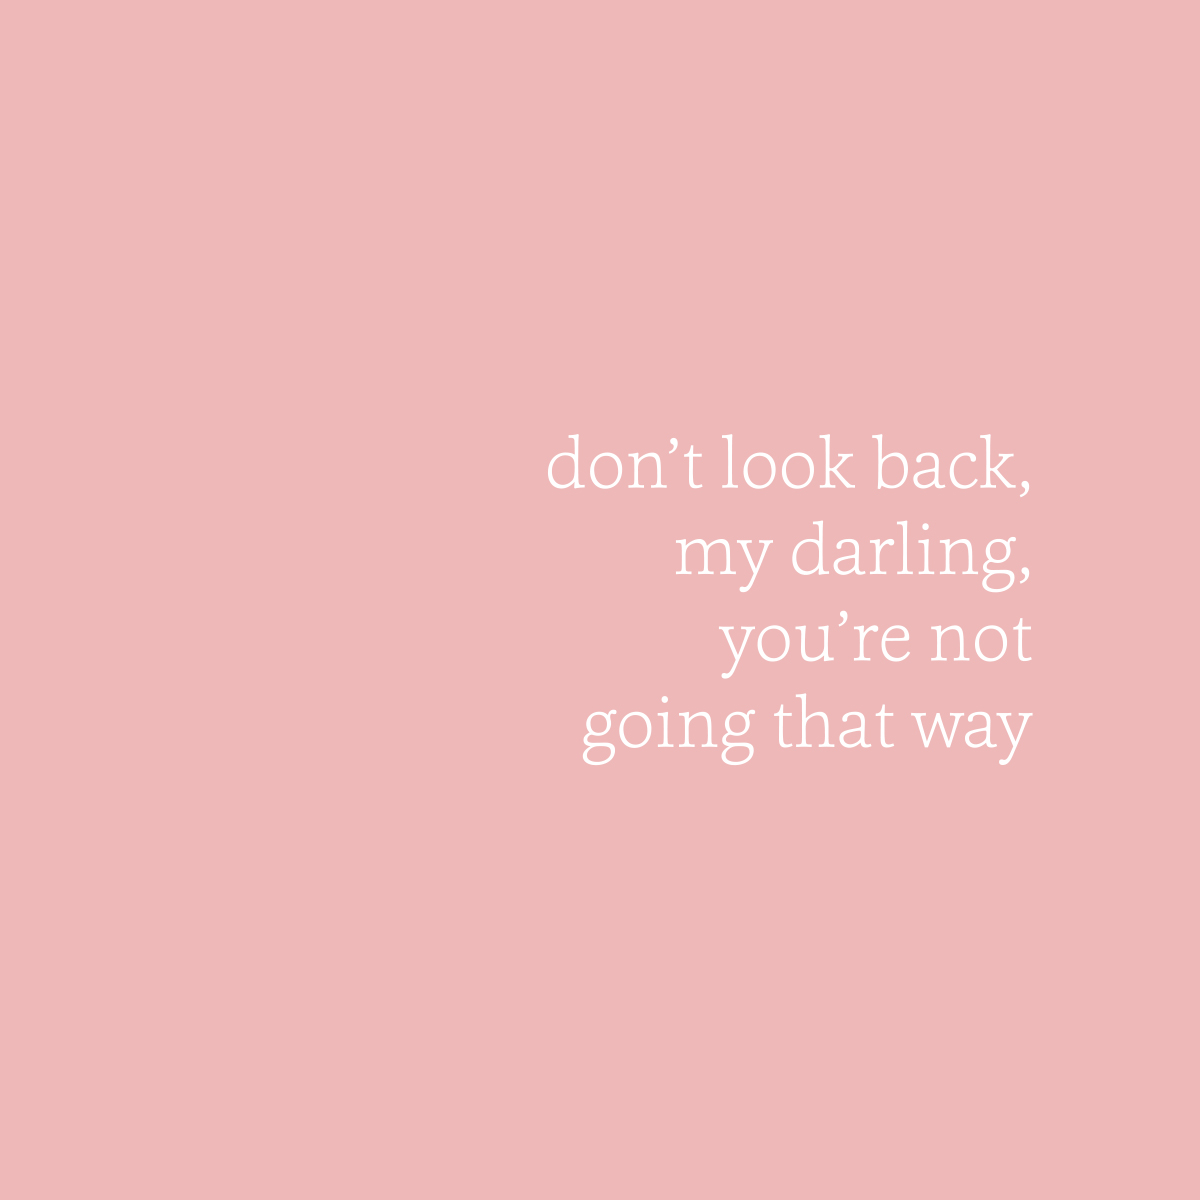 don't look back my darling you're not going that way